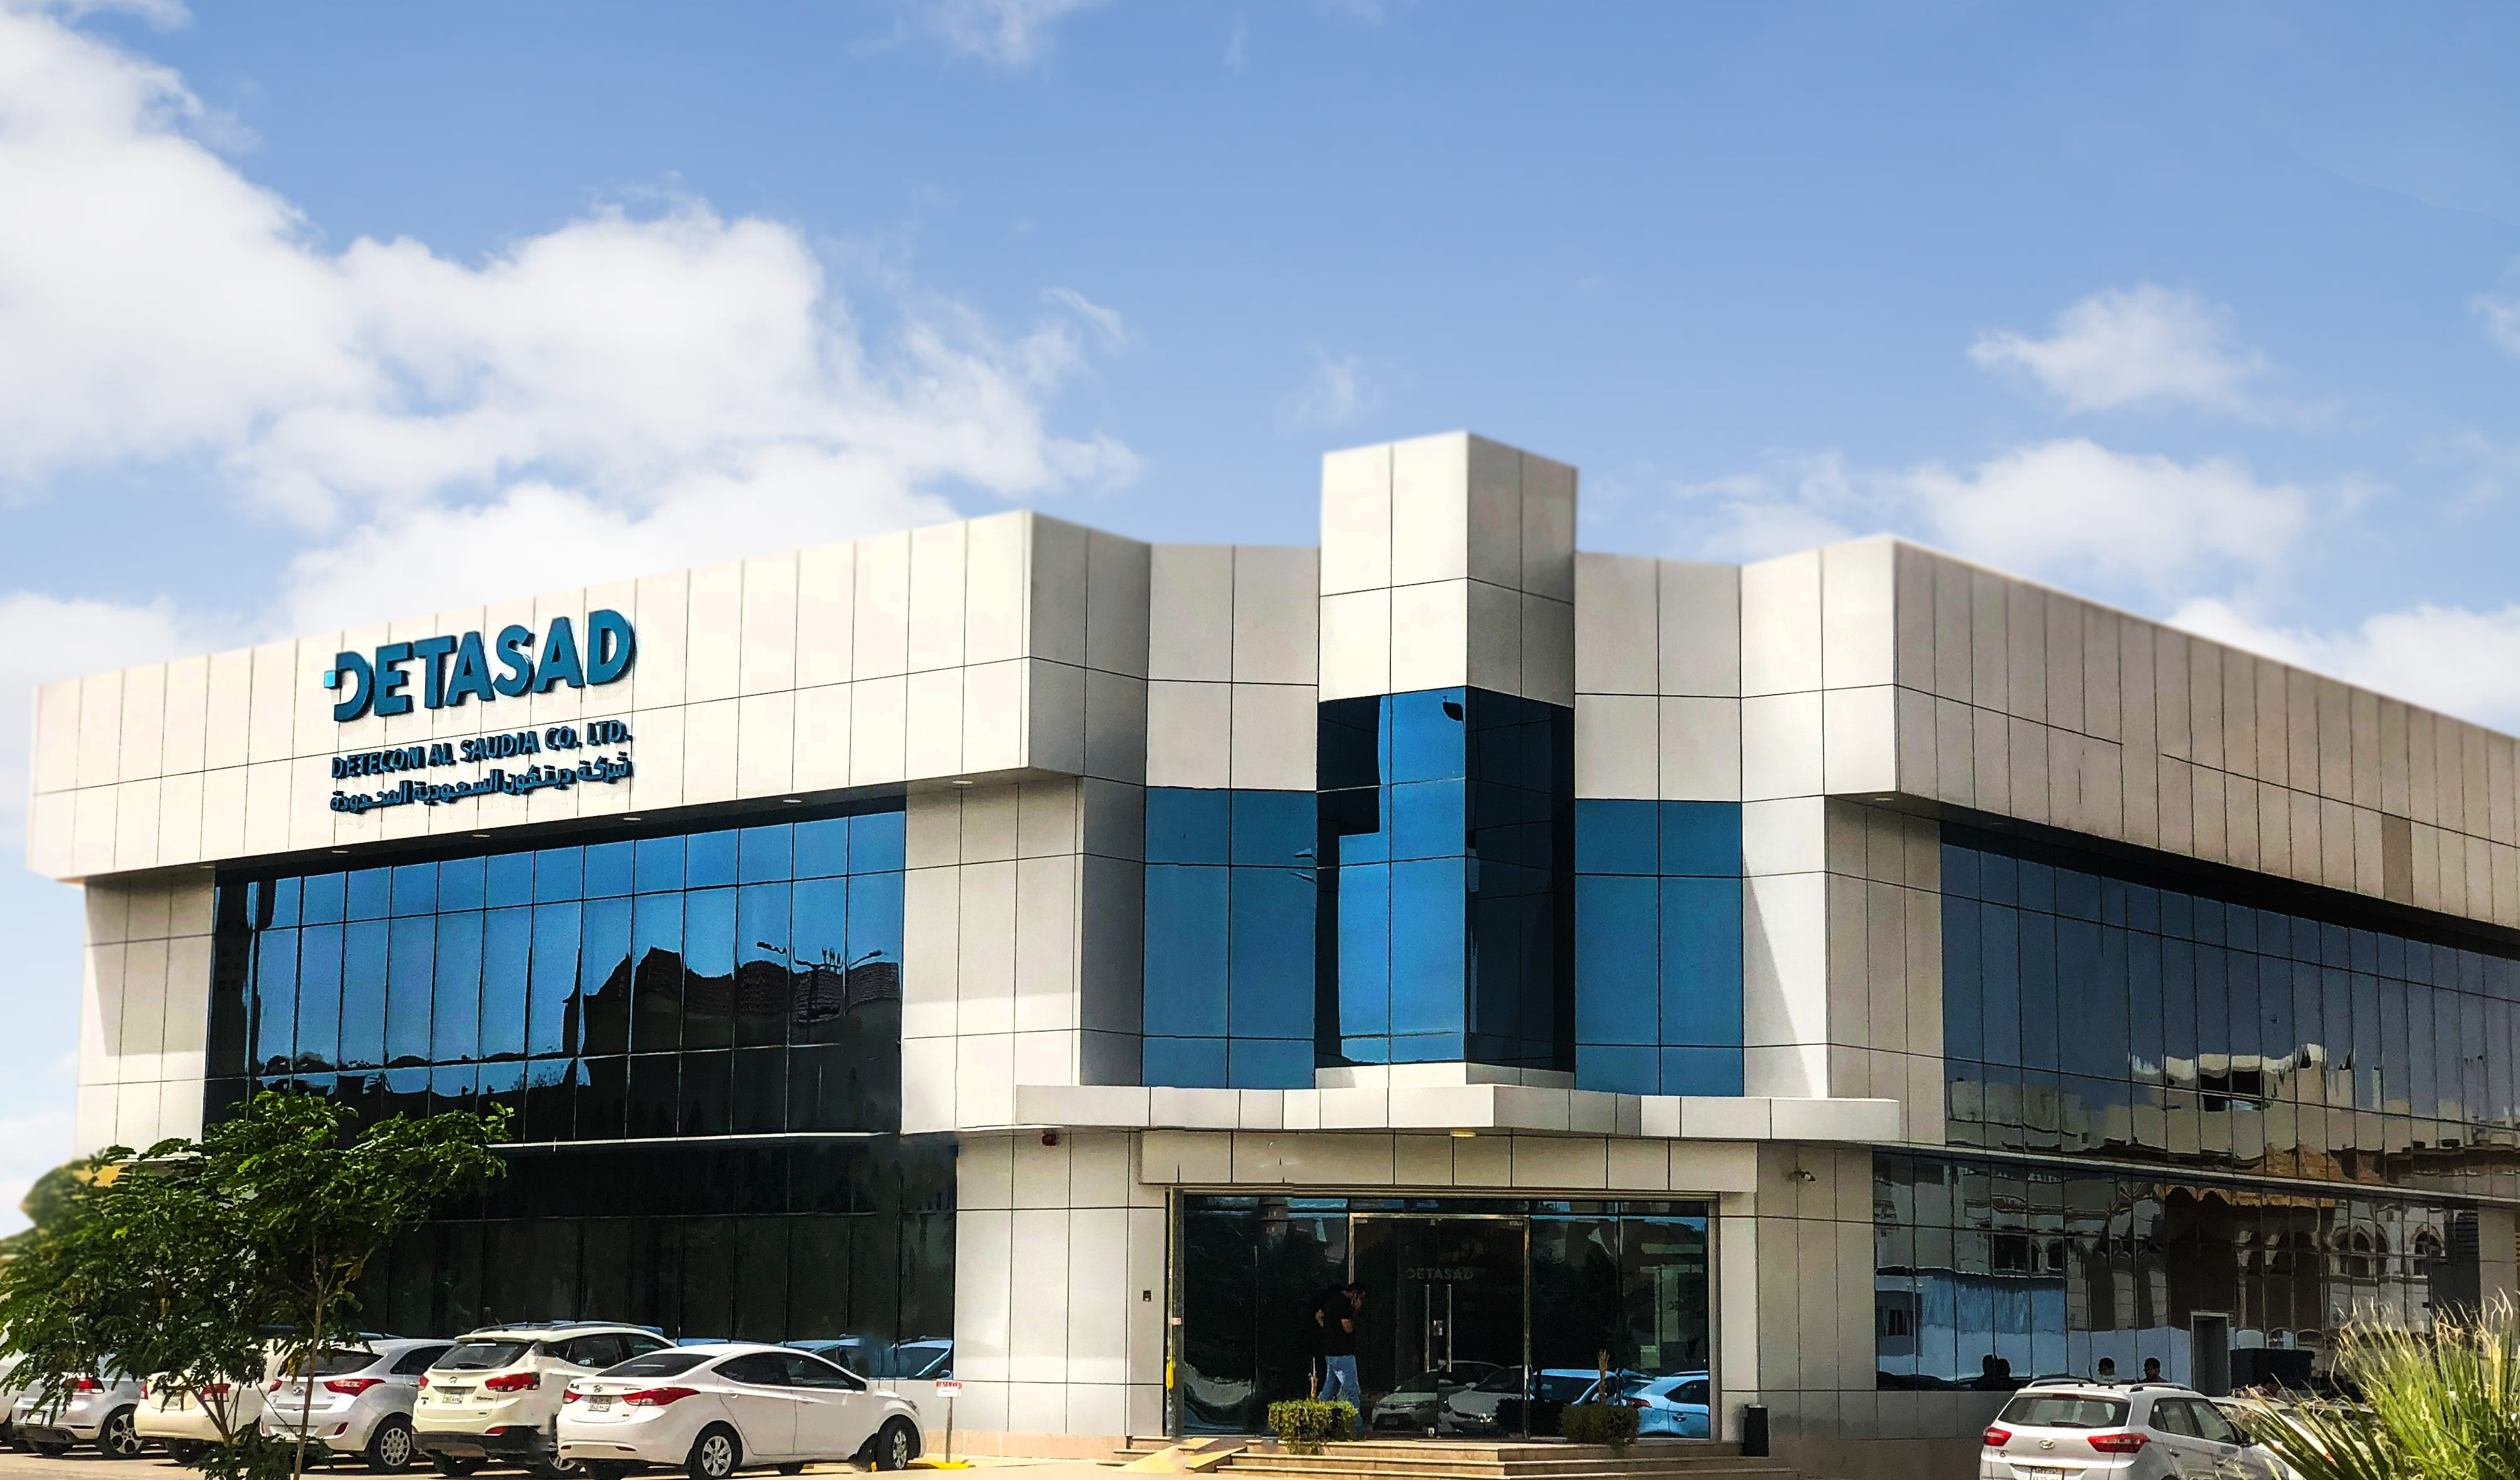 DETASAD (Detecon Al Saudia Co. Ltd.).